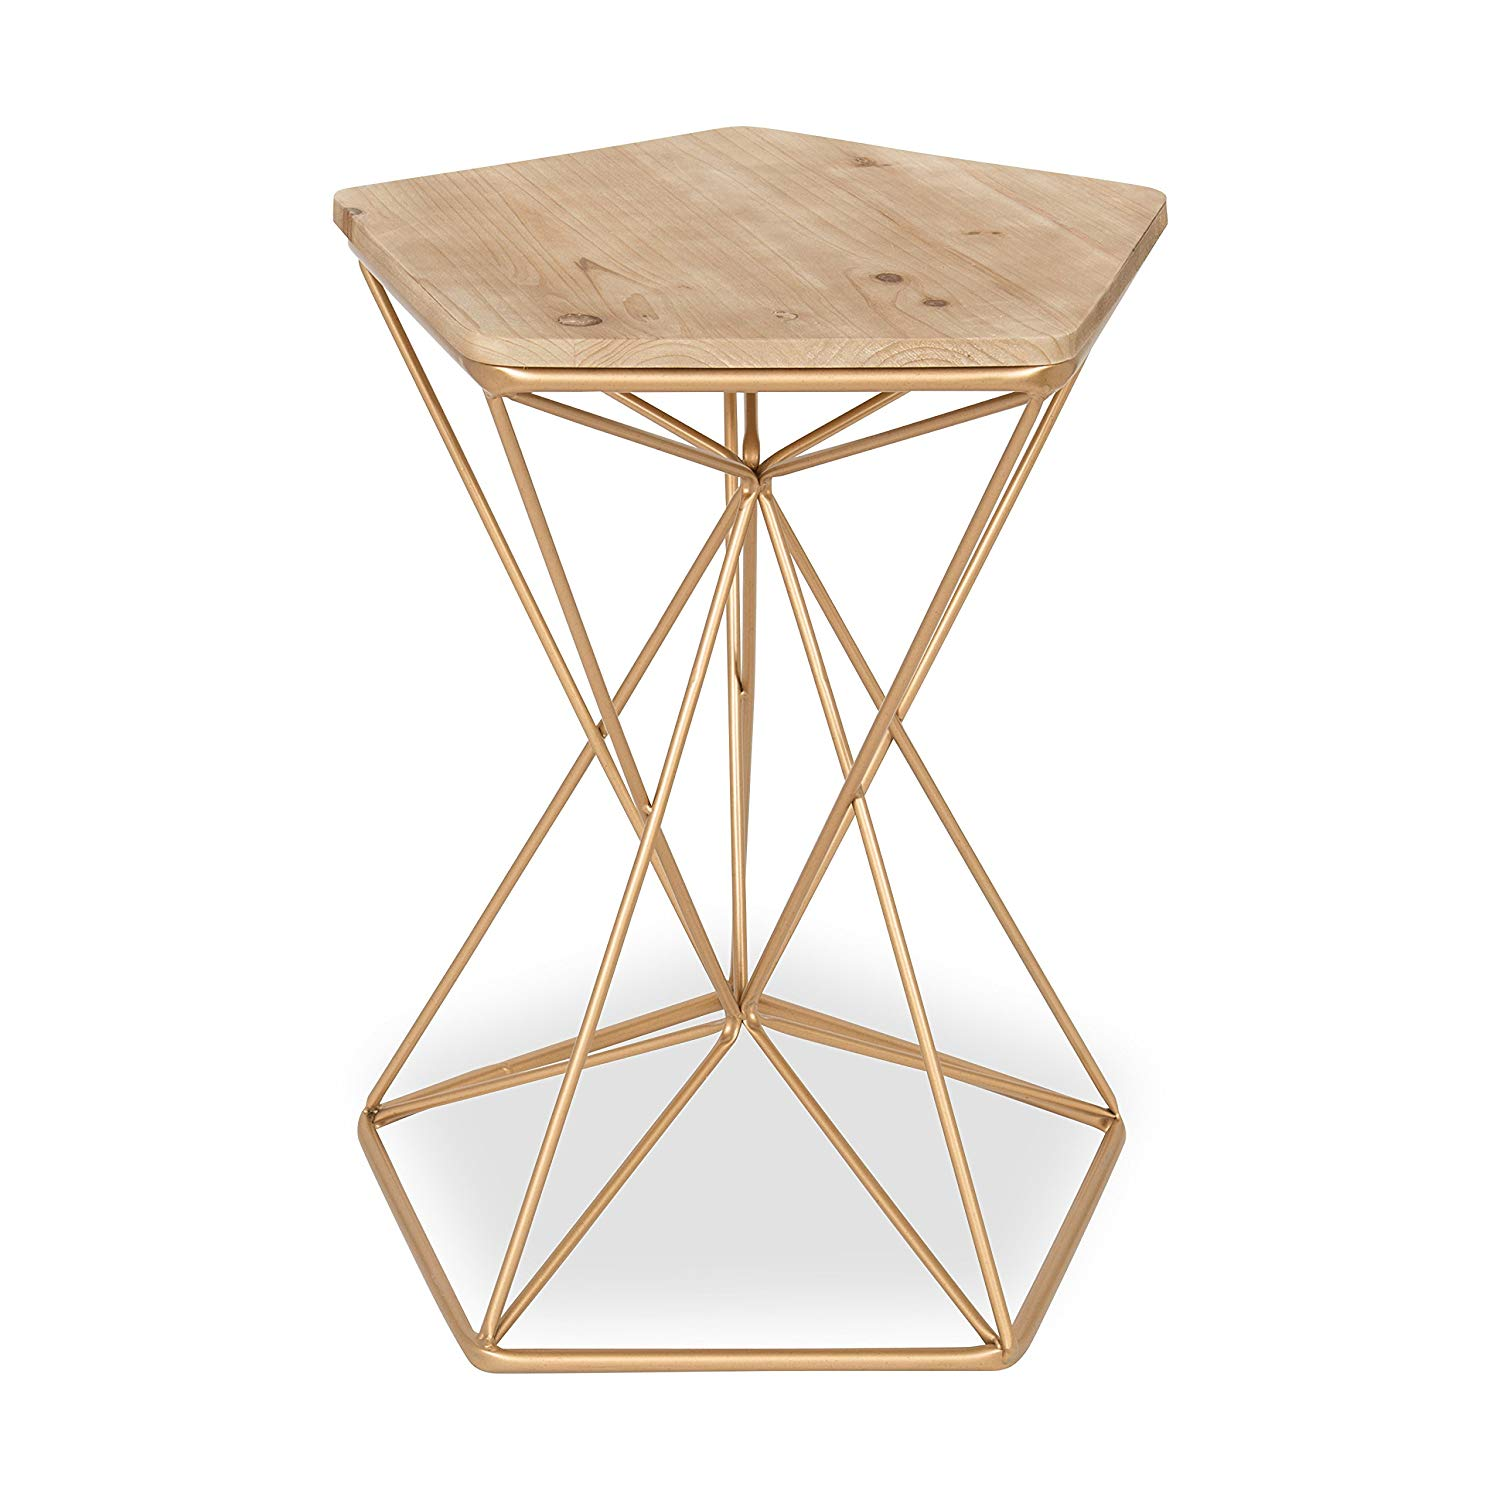 kate and laurel ulane metal side accent table with wood natural top rose gold home kitchen wall decor chinese style lamps living room essentials west elm bedside blue desk small